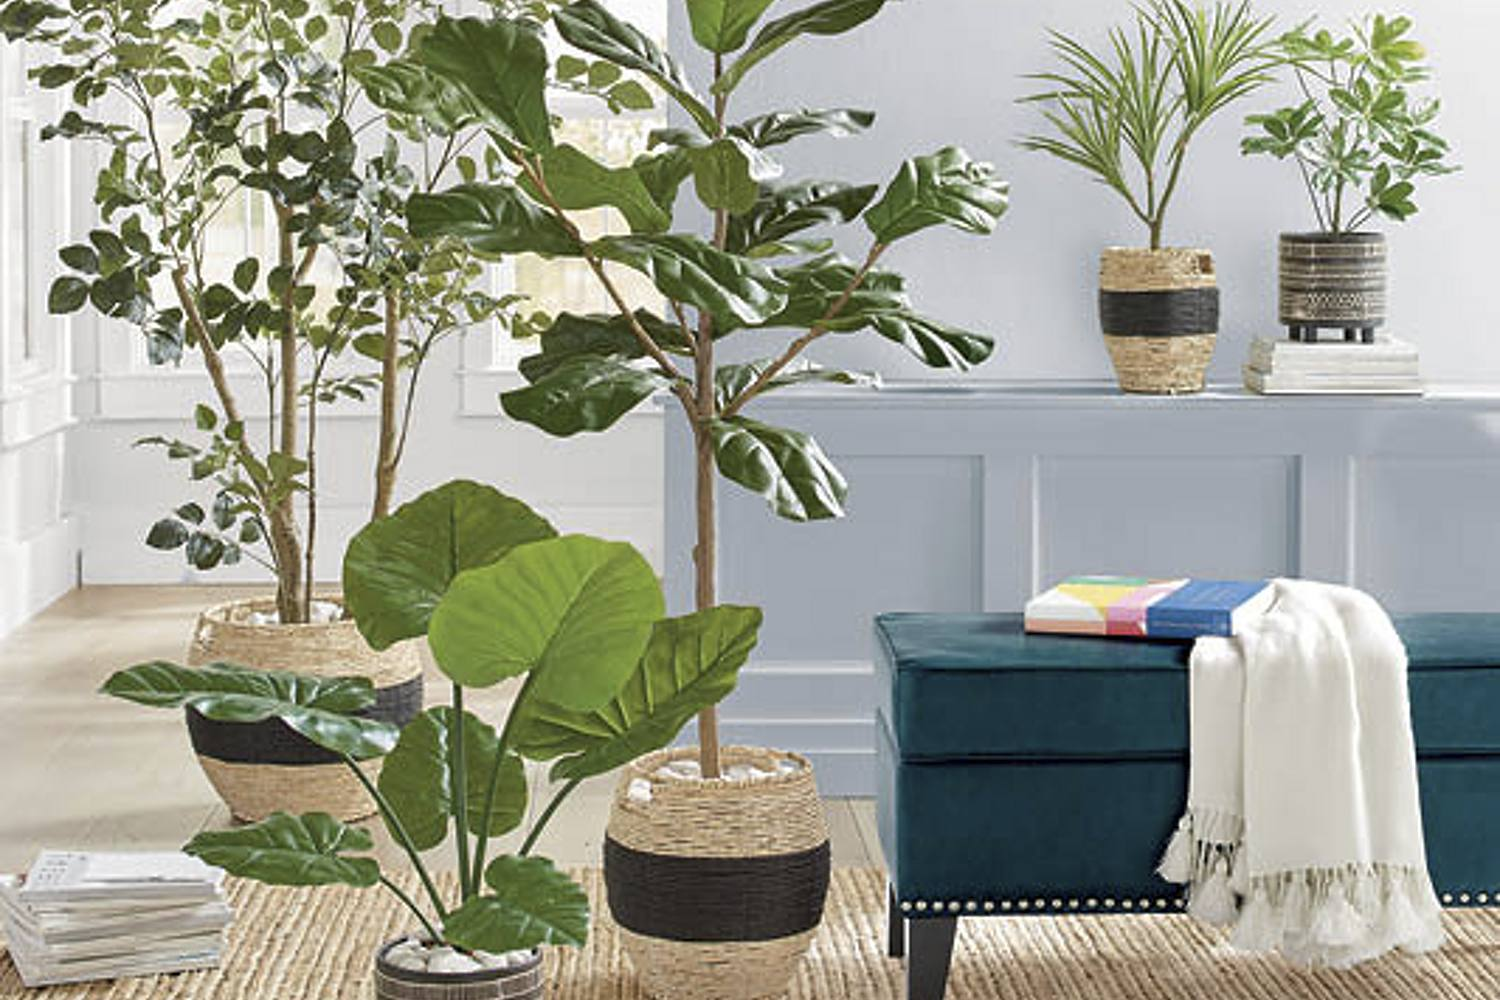 How To Use Artificial Plants Indoors